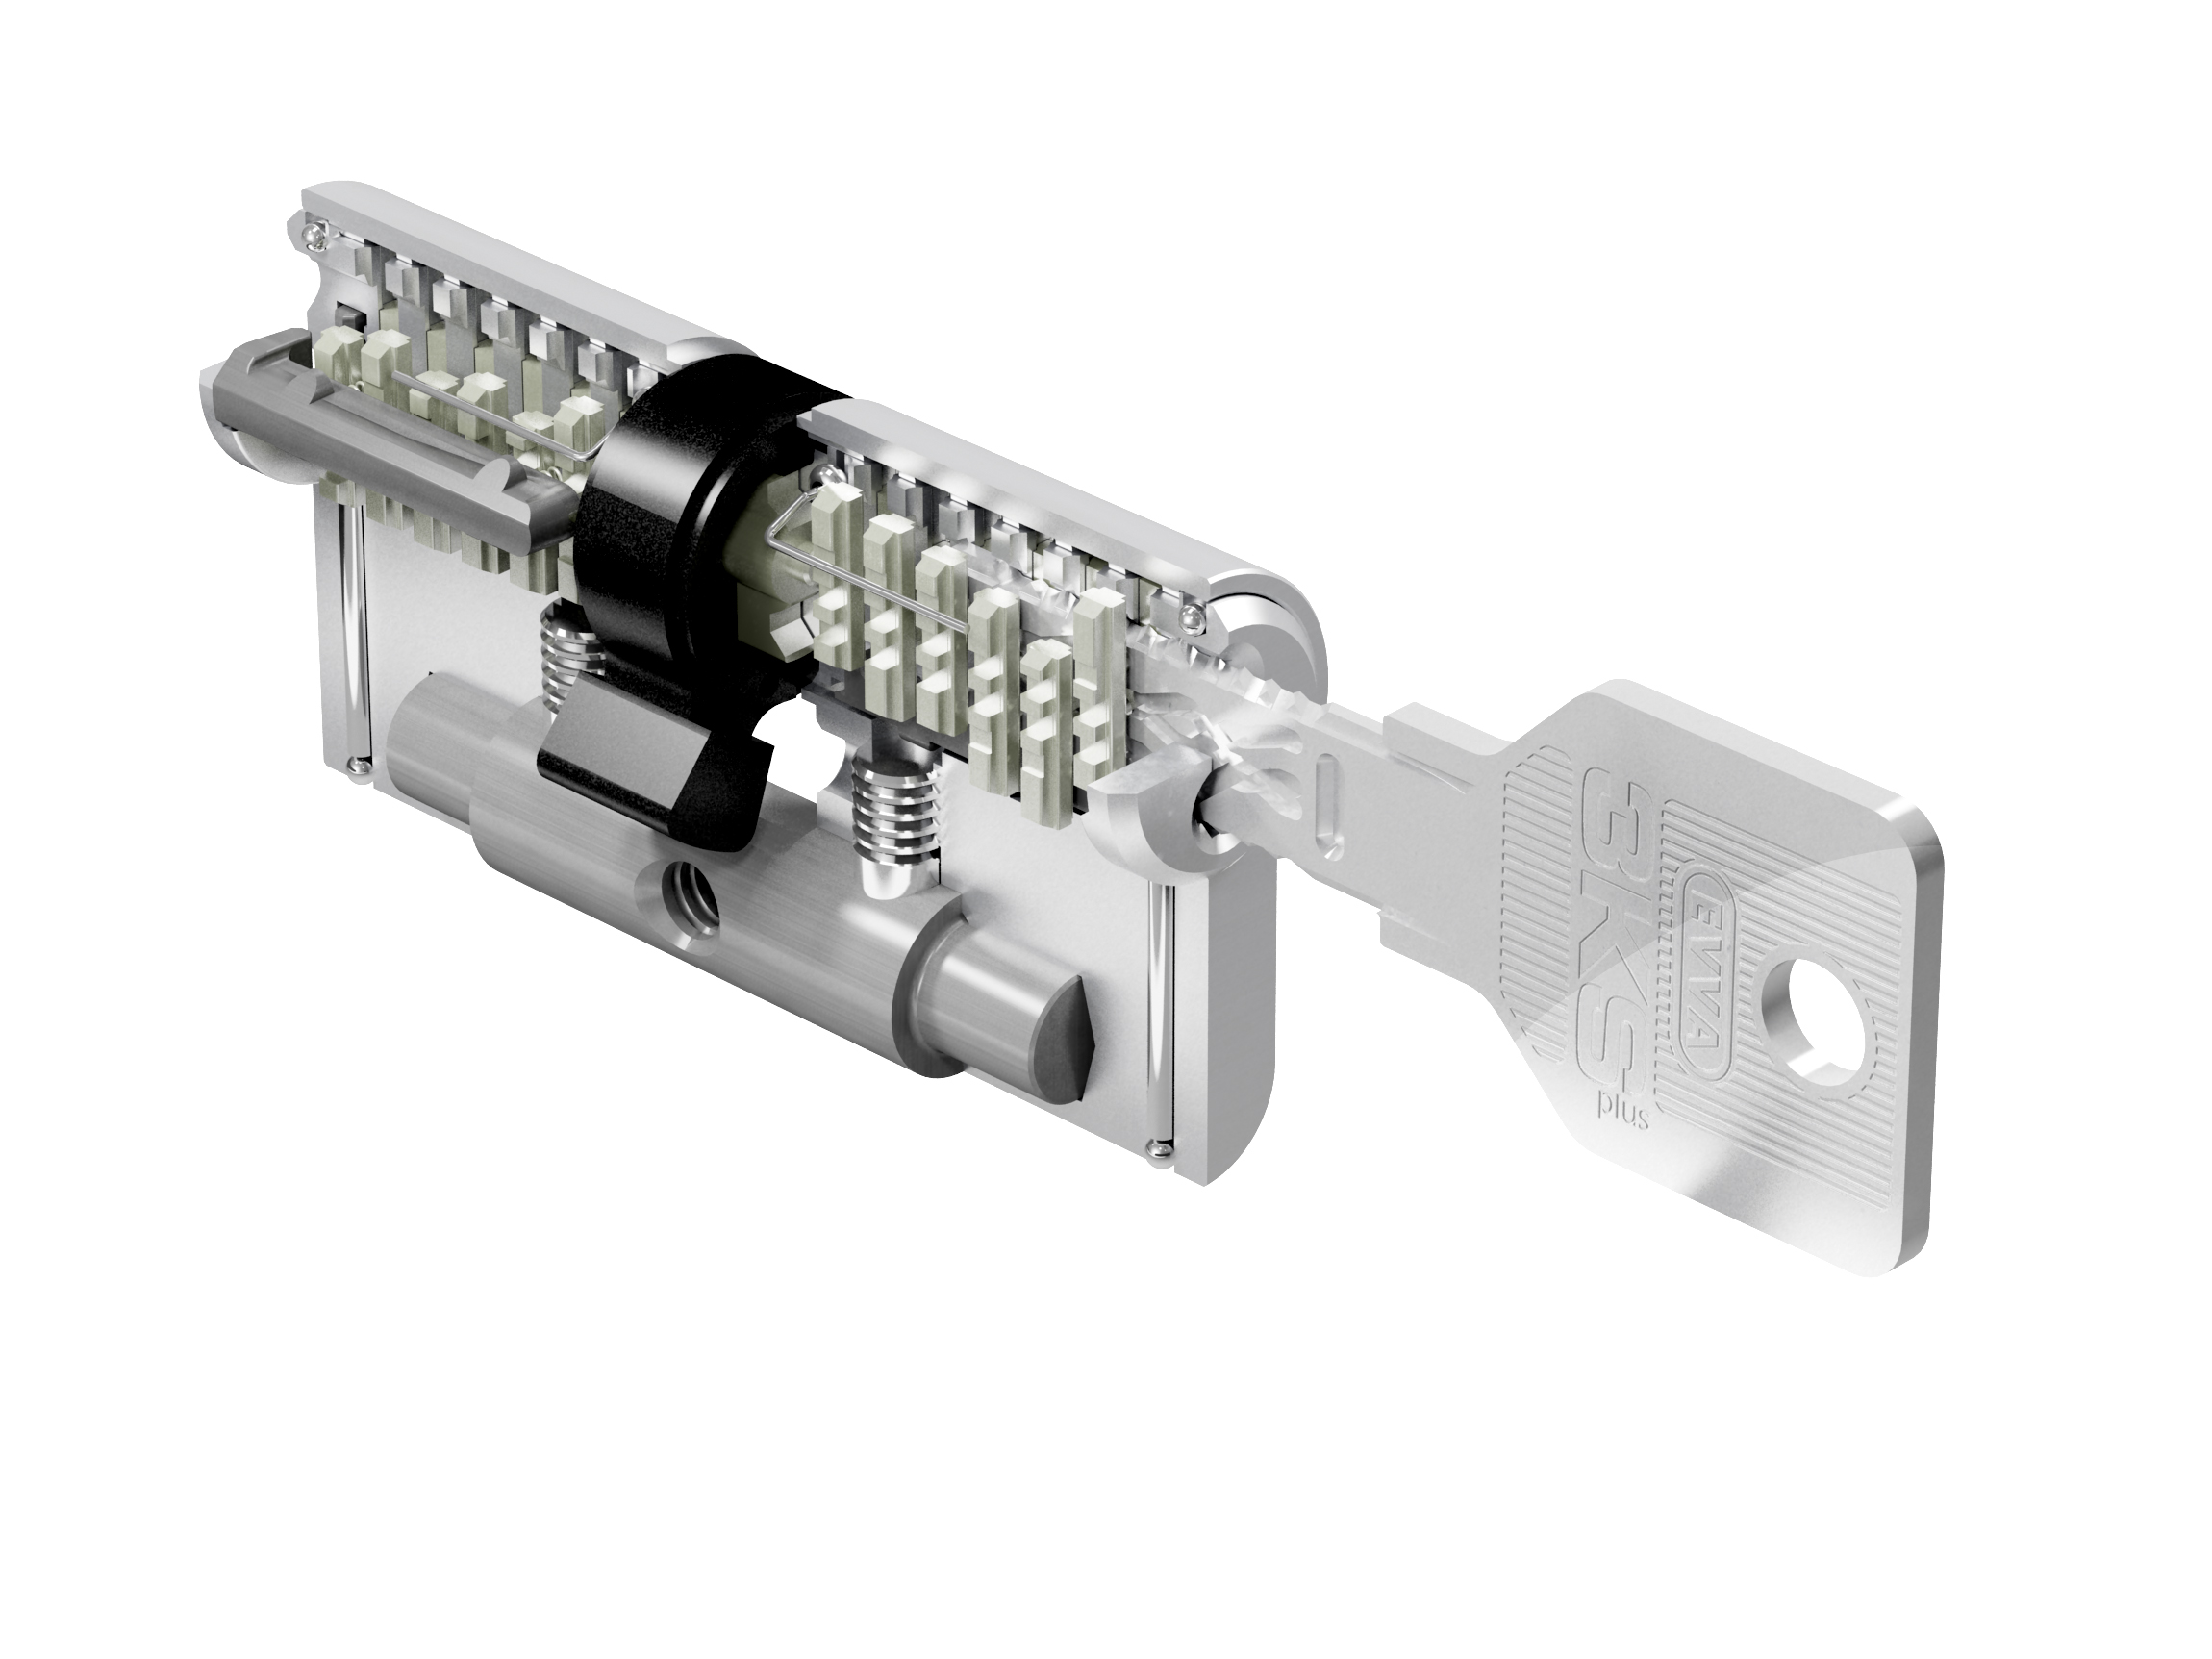 Цилиндр Evva 3KS L122 - Evva-locks.ru